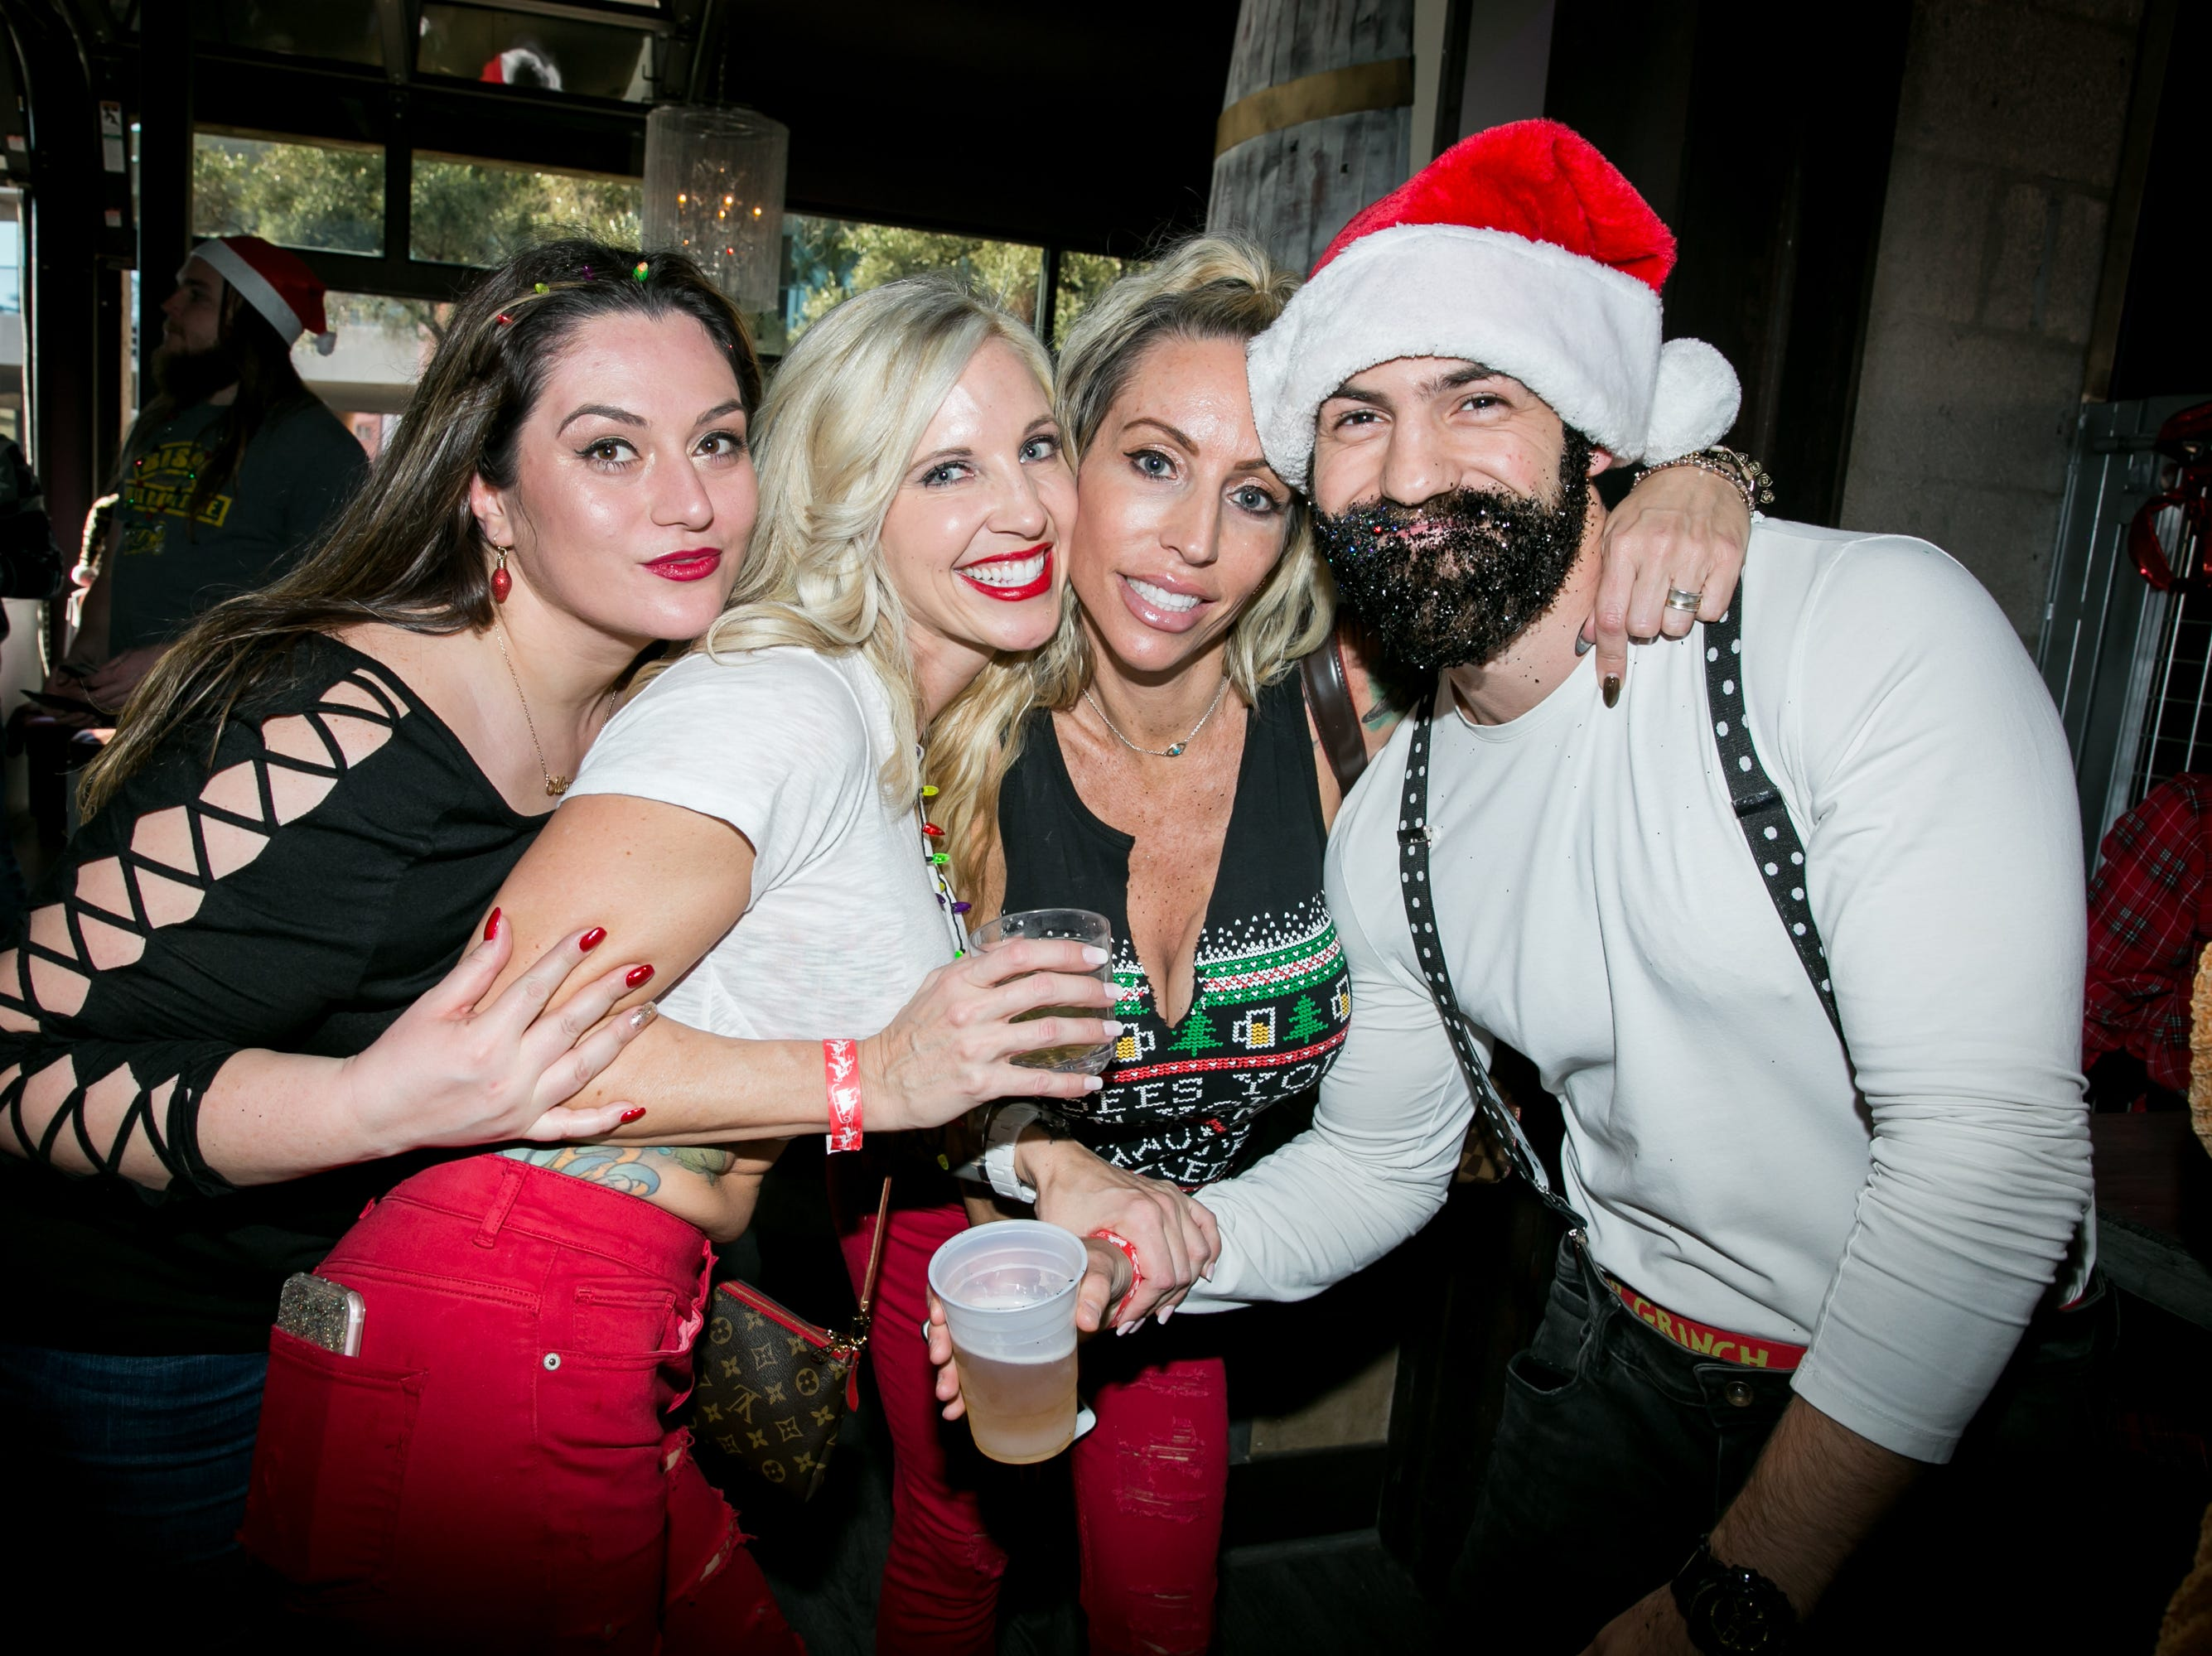 His glitter beard was fantastic during the Scottsdale Santa Crawl at Wasted Grain on Saturday, December 8, 2018.